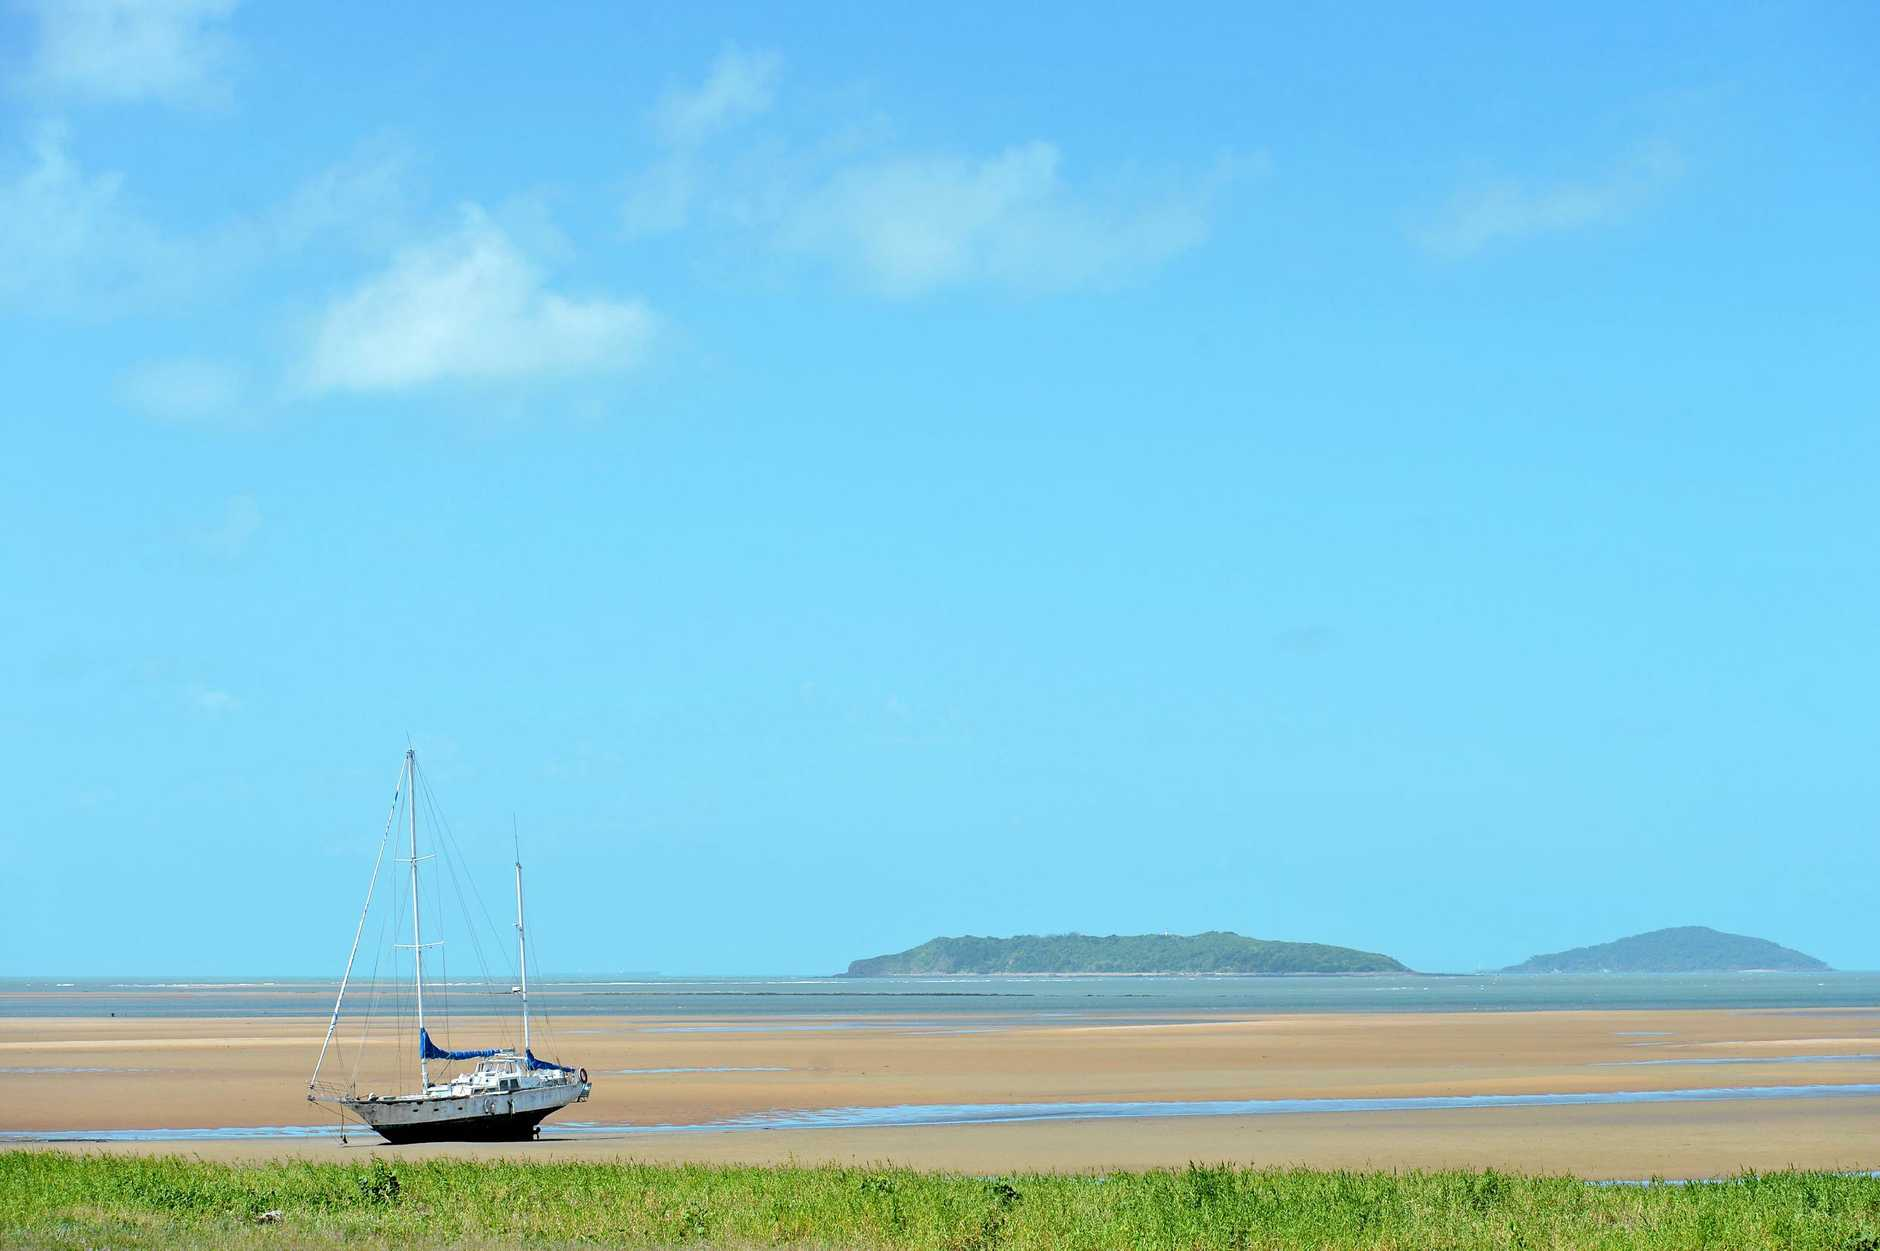 Yacht beached on a Sandbar along Town Beach, Mackay